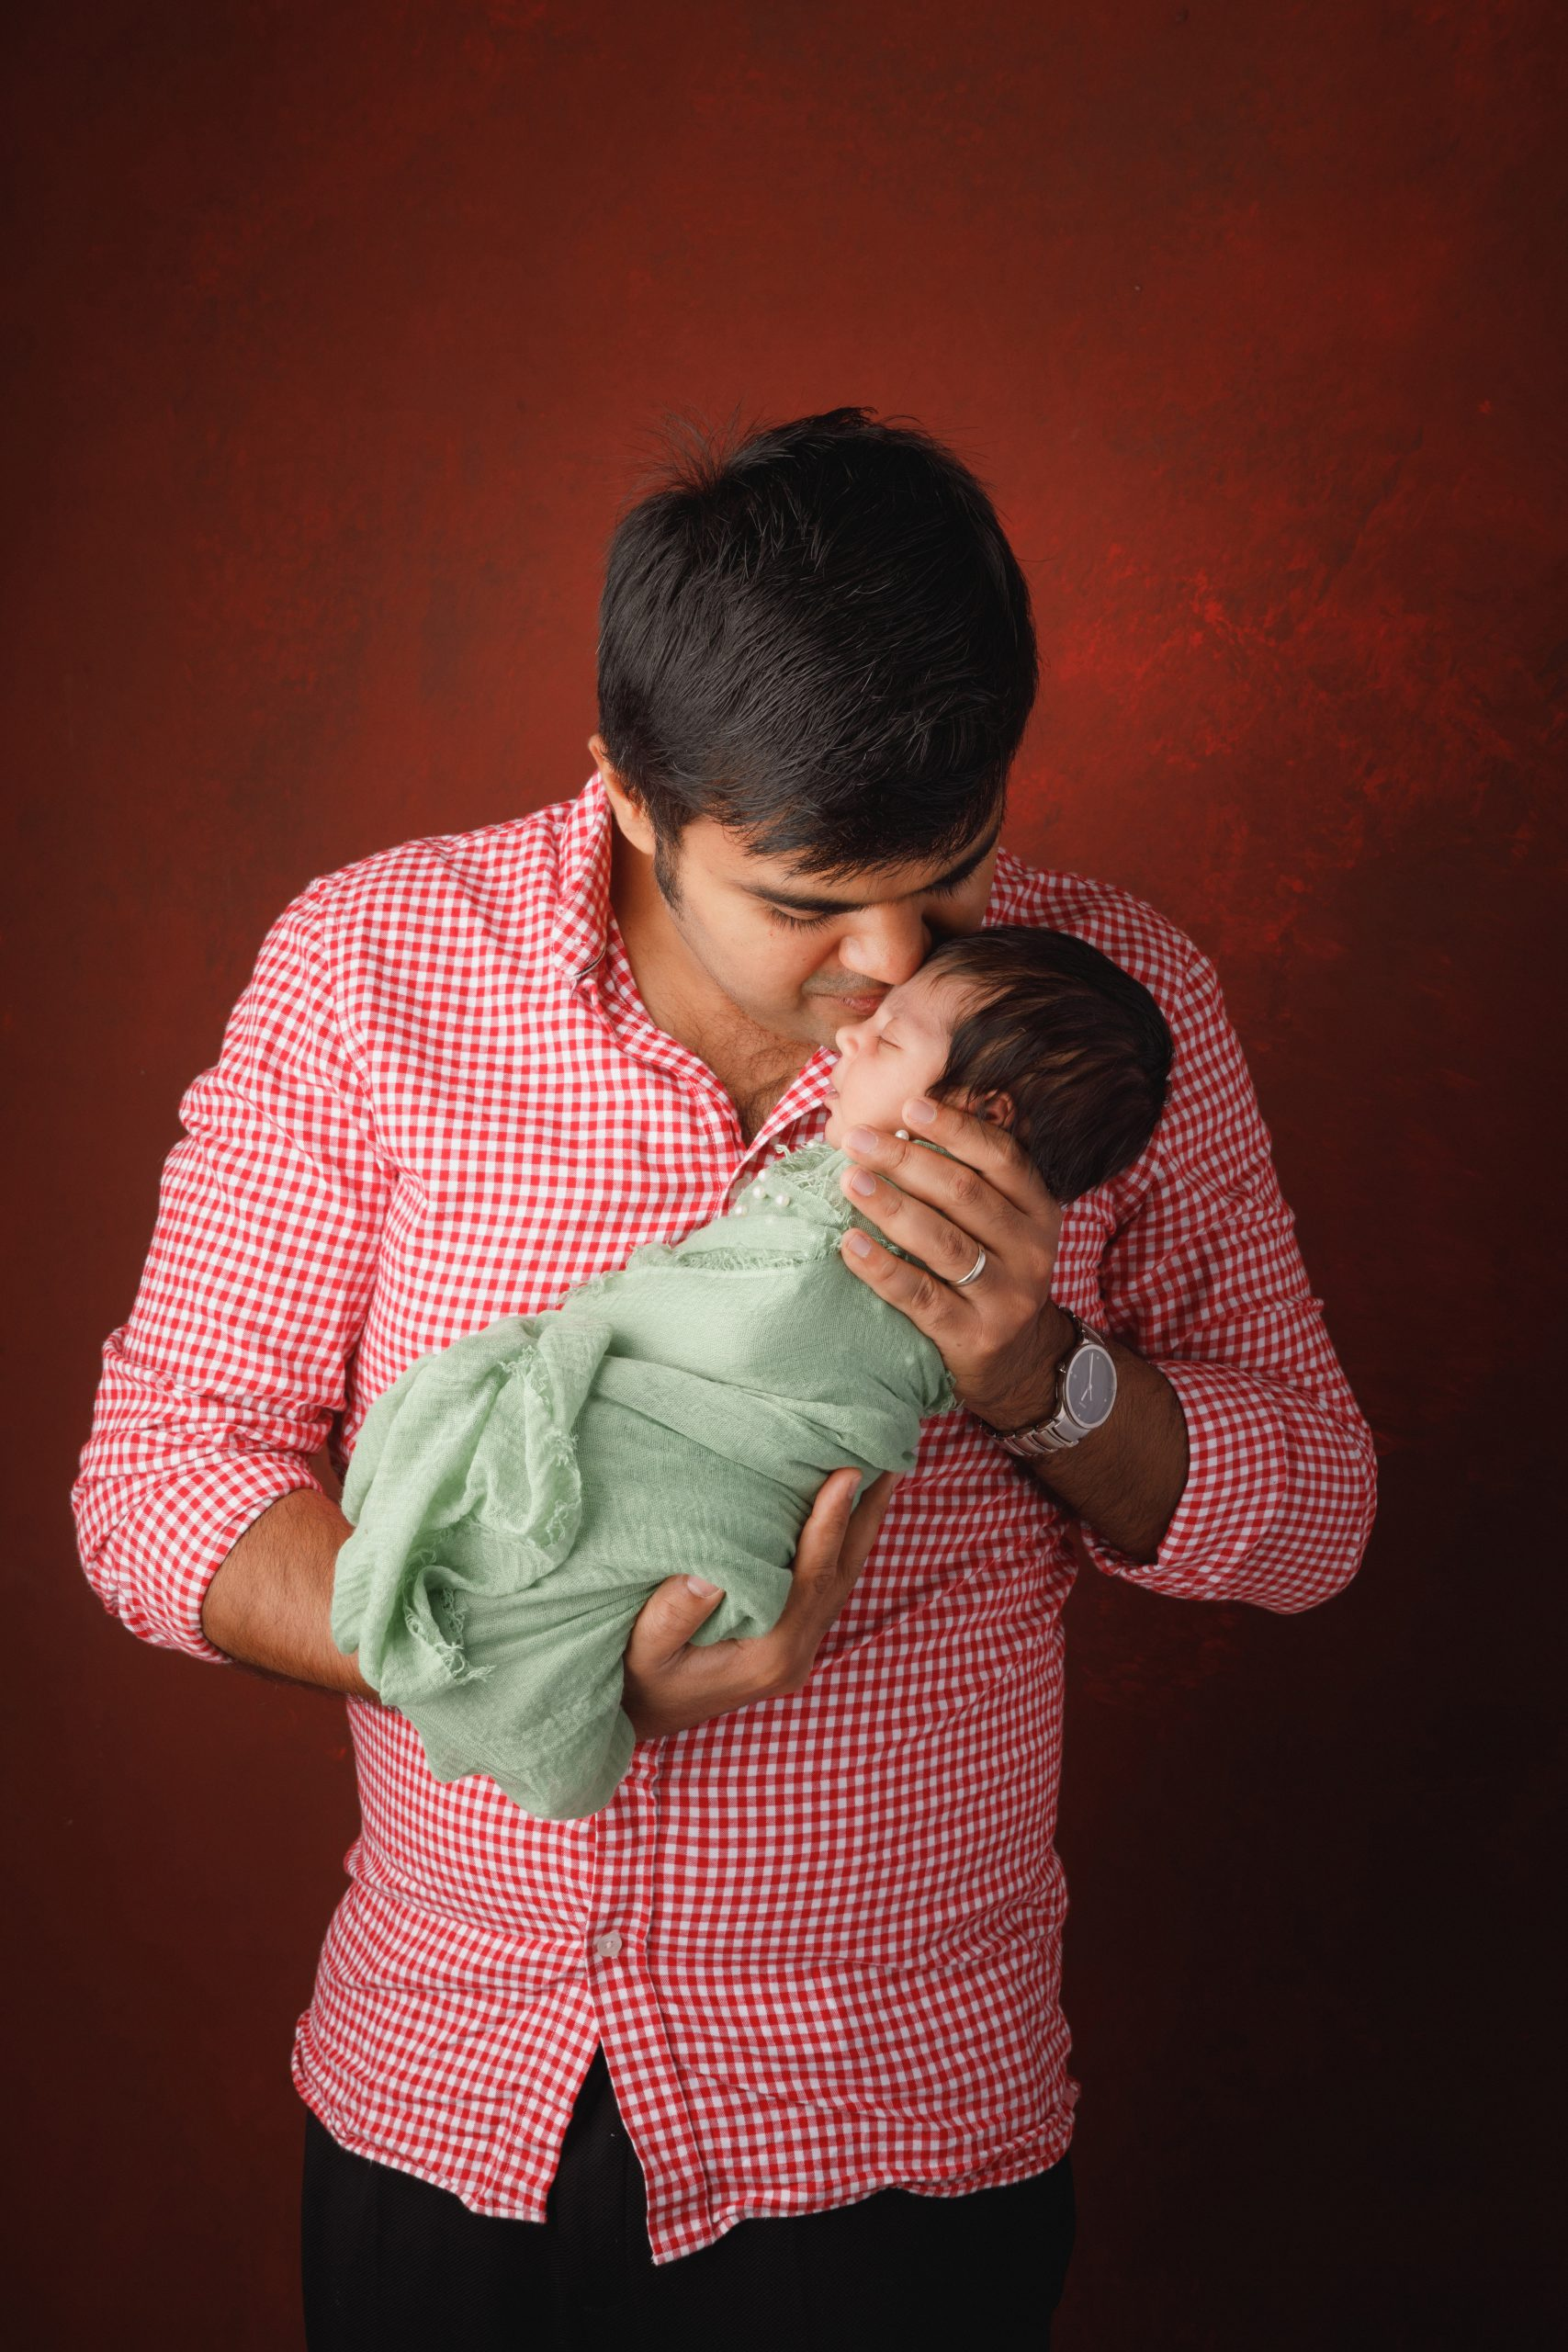 father with newborn baby girl